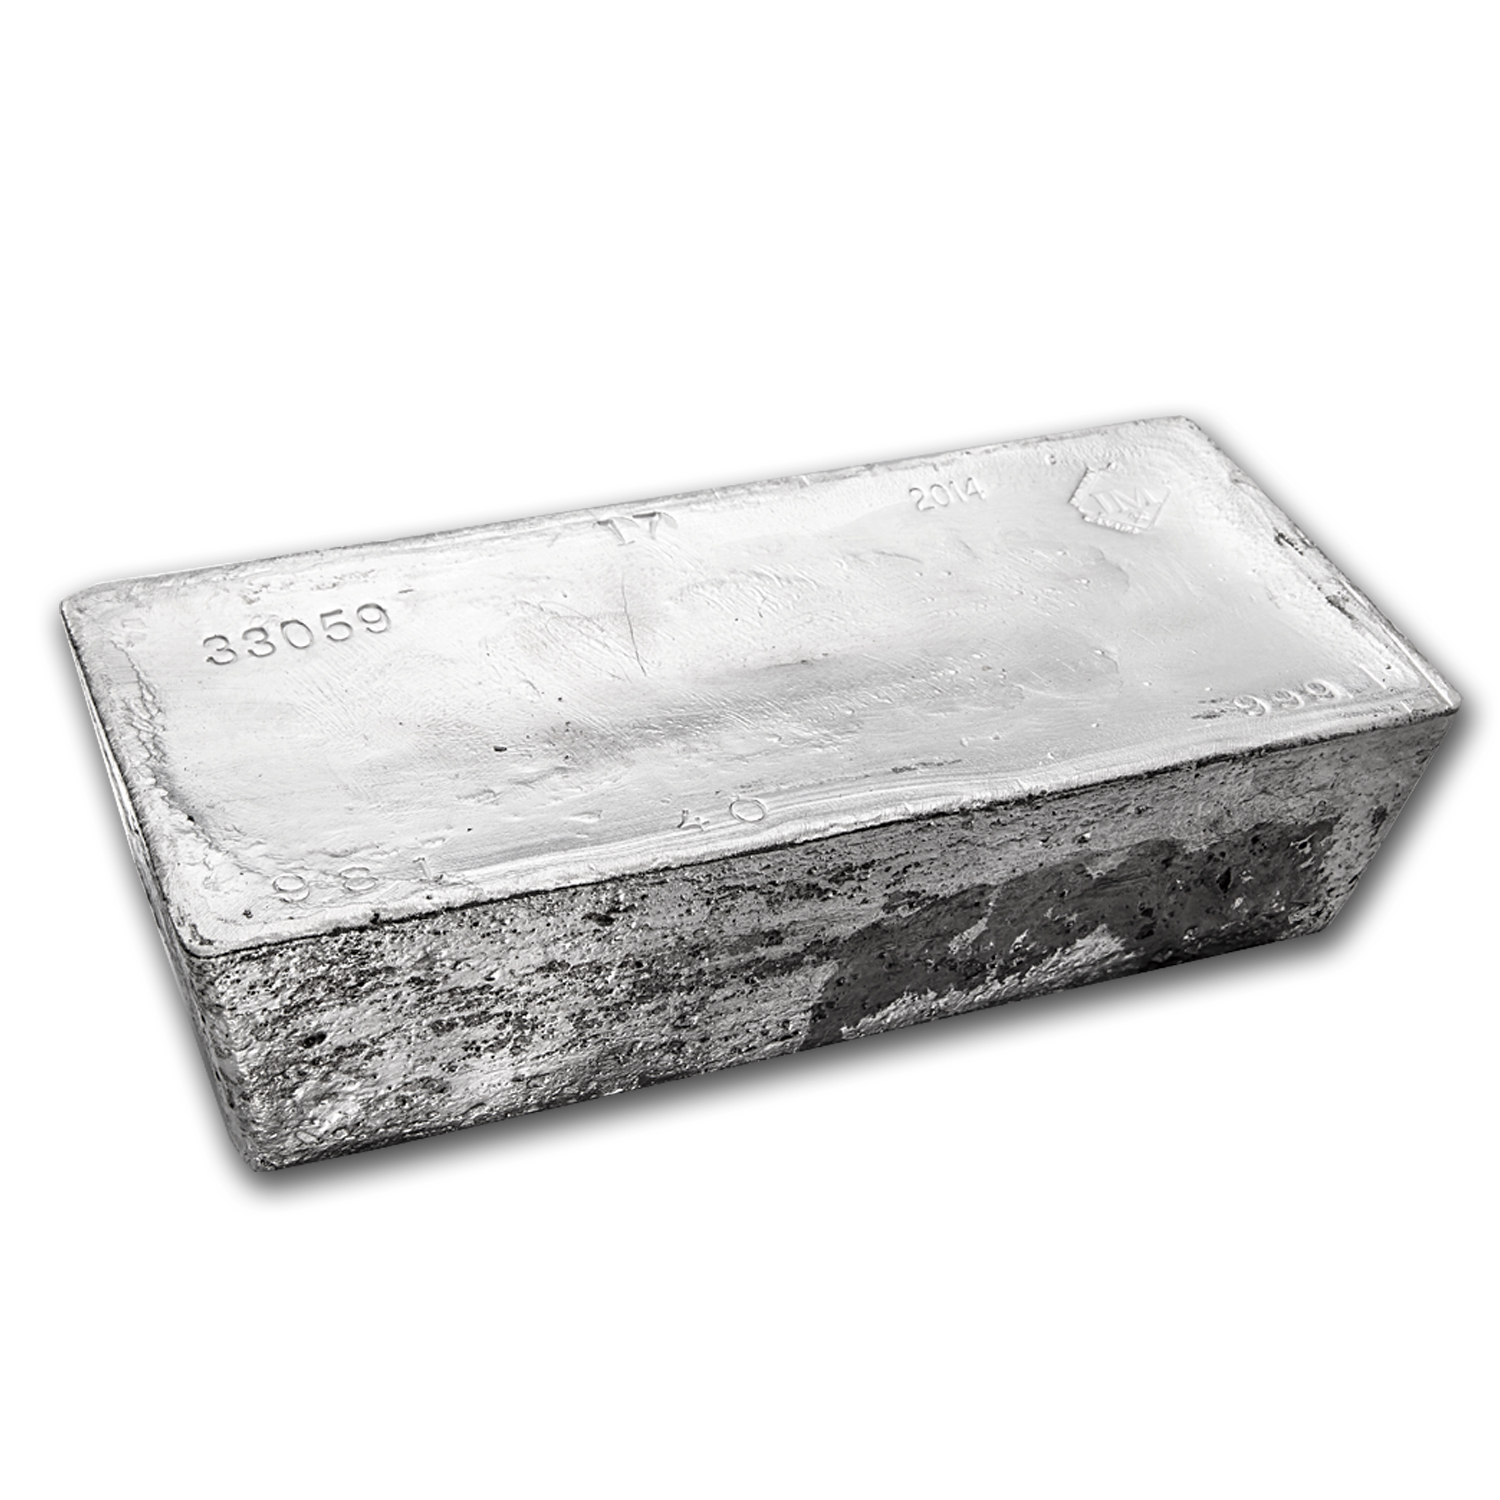 942.70 oz Silver Bars - Johnson Matthey